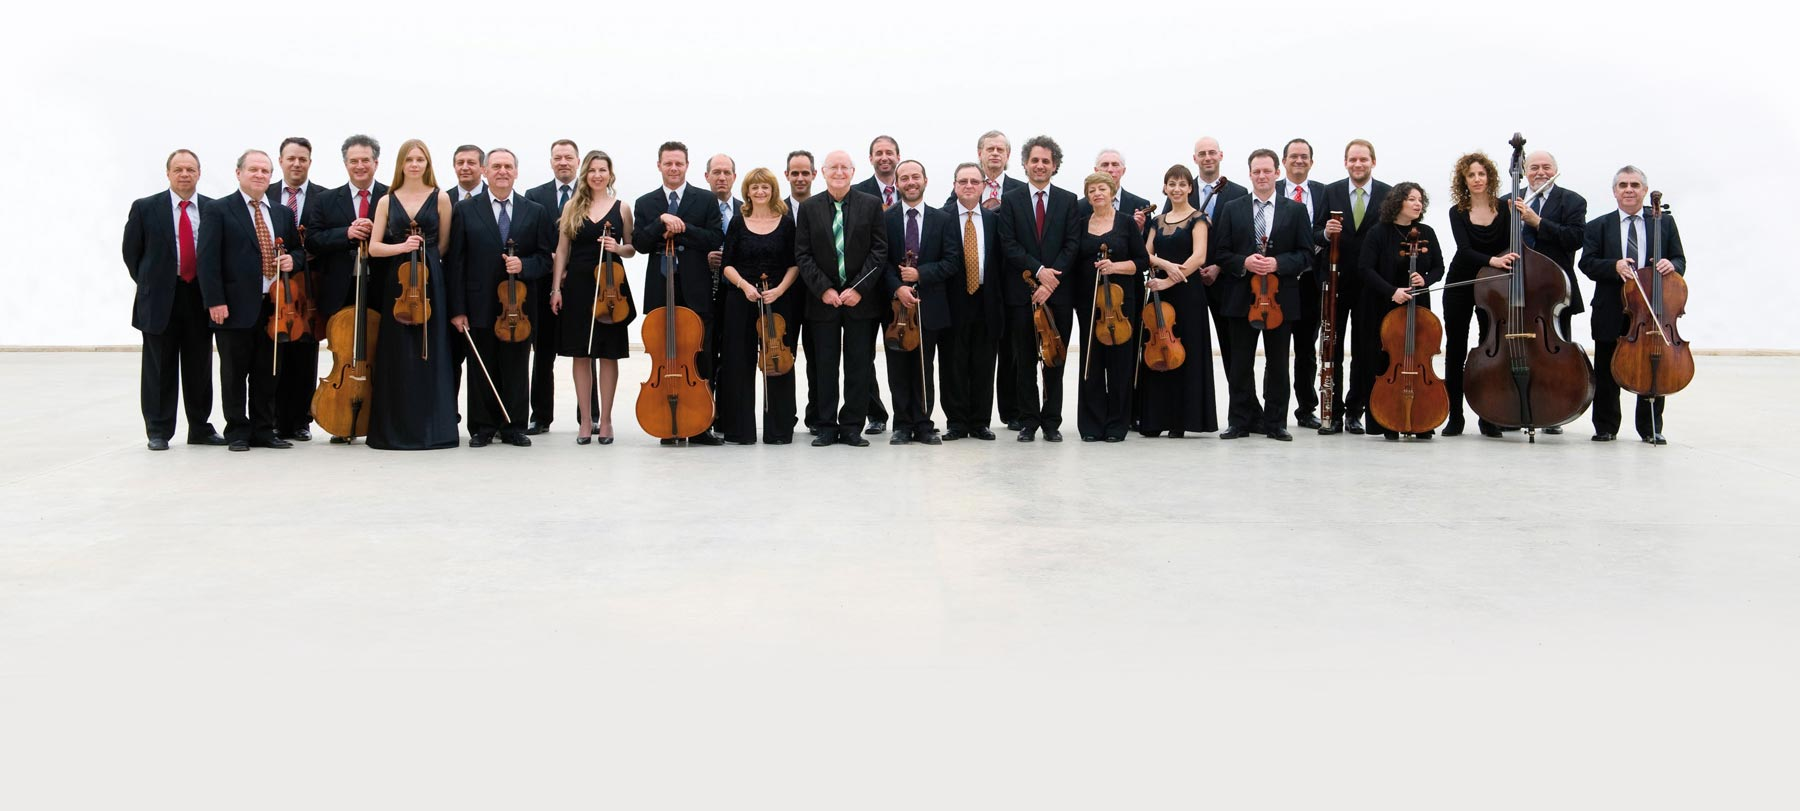 The Israel Camerata Jerusalem